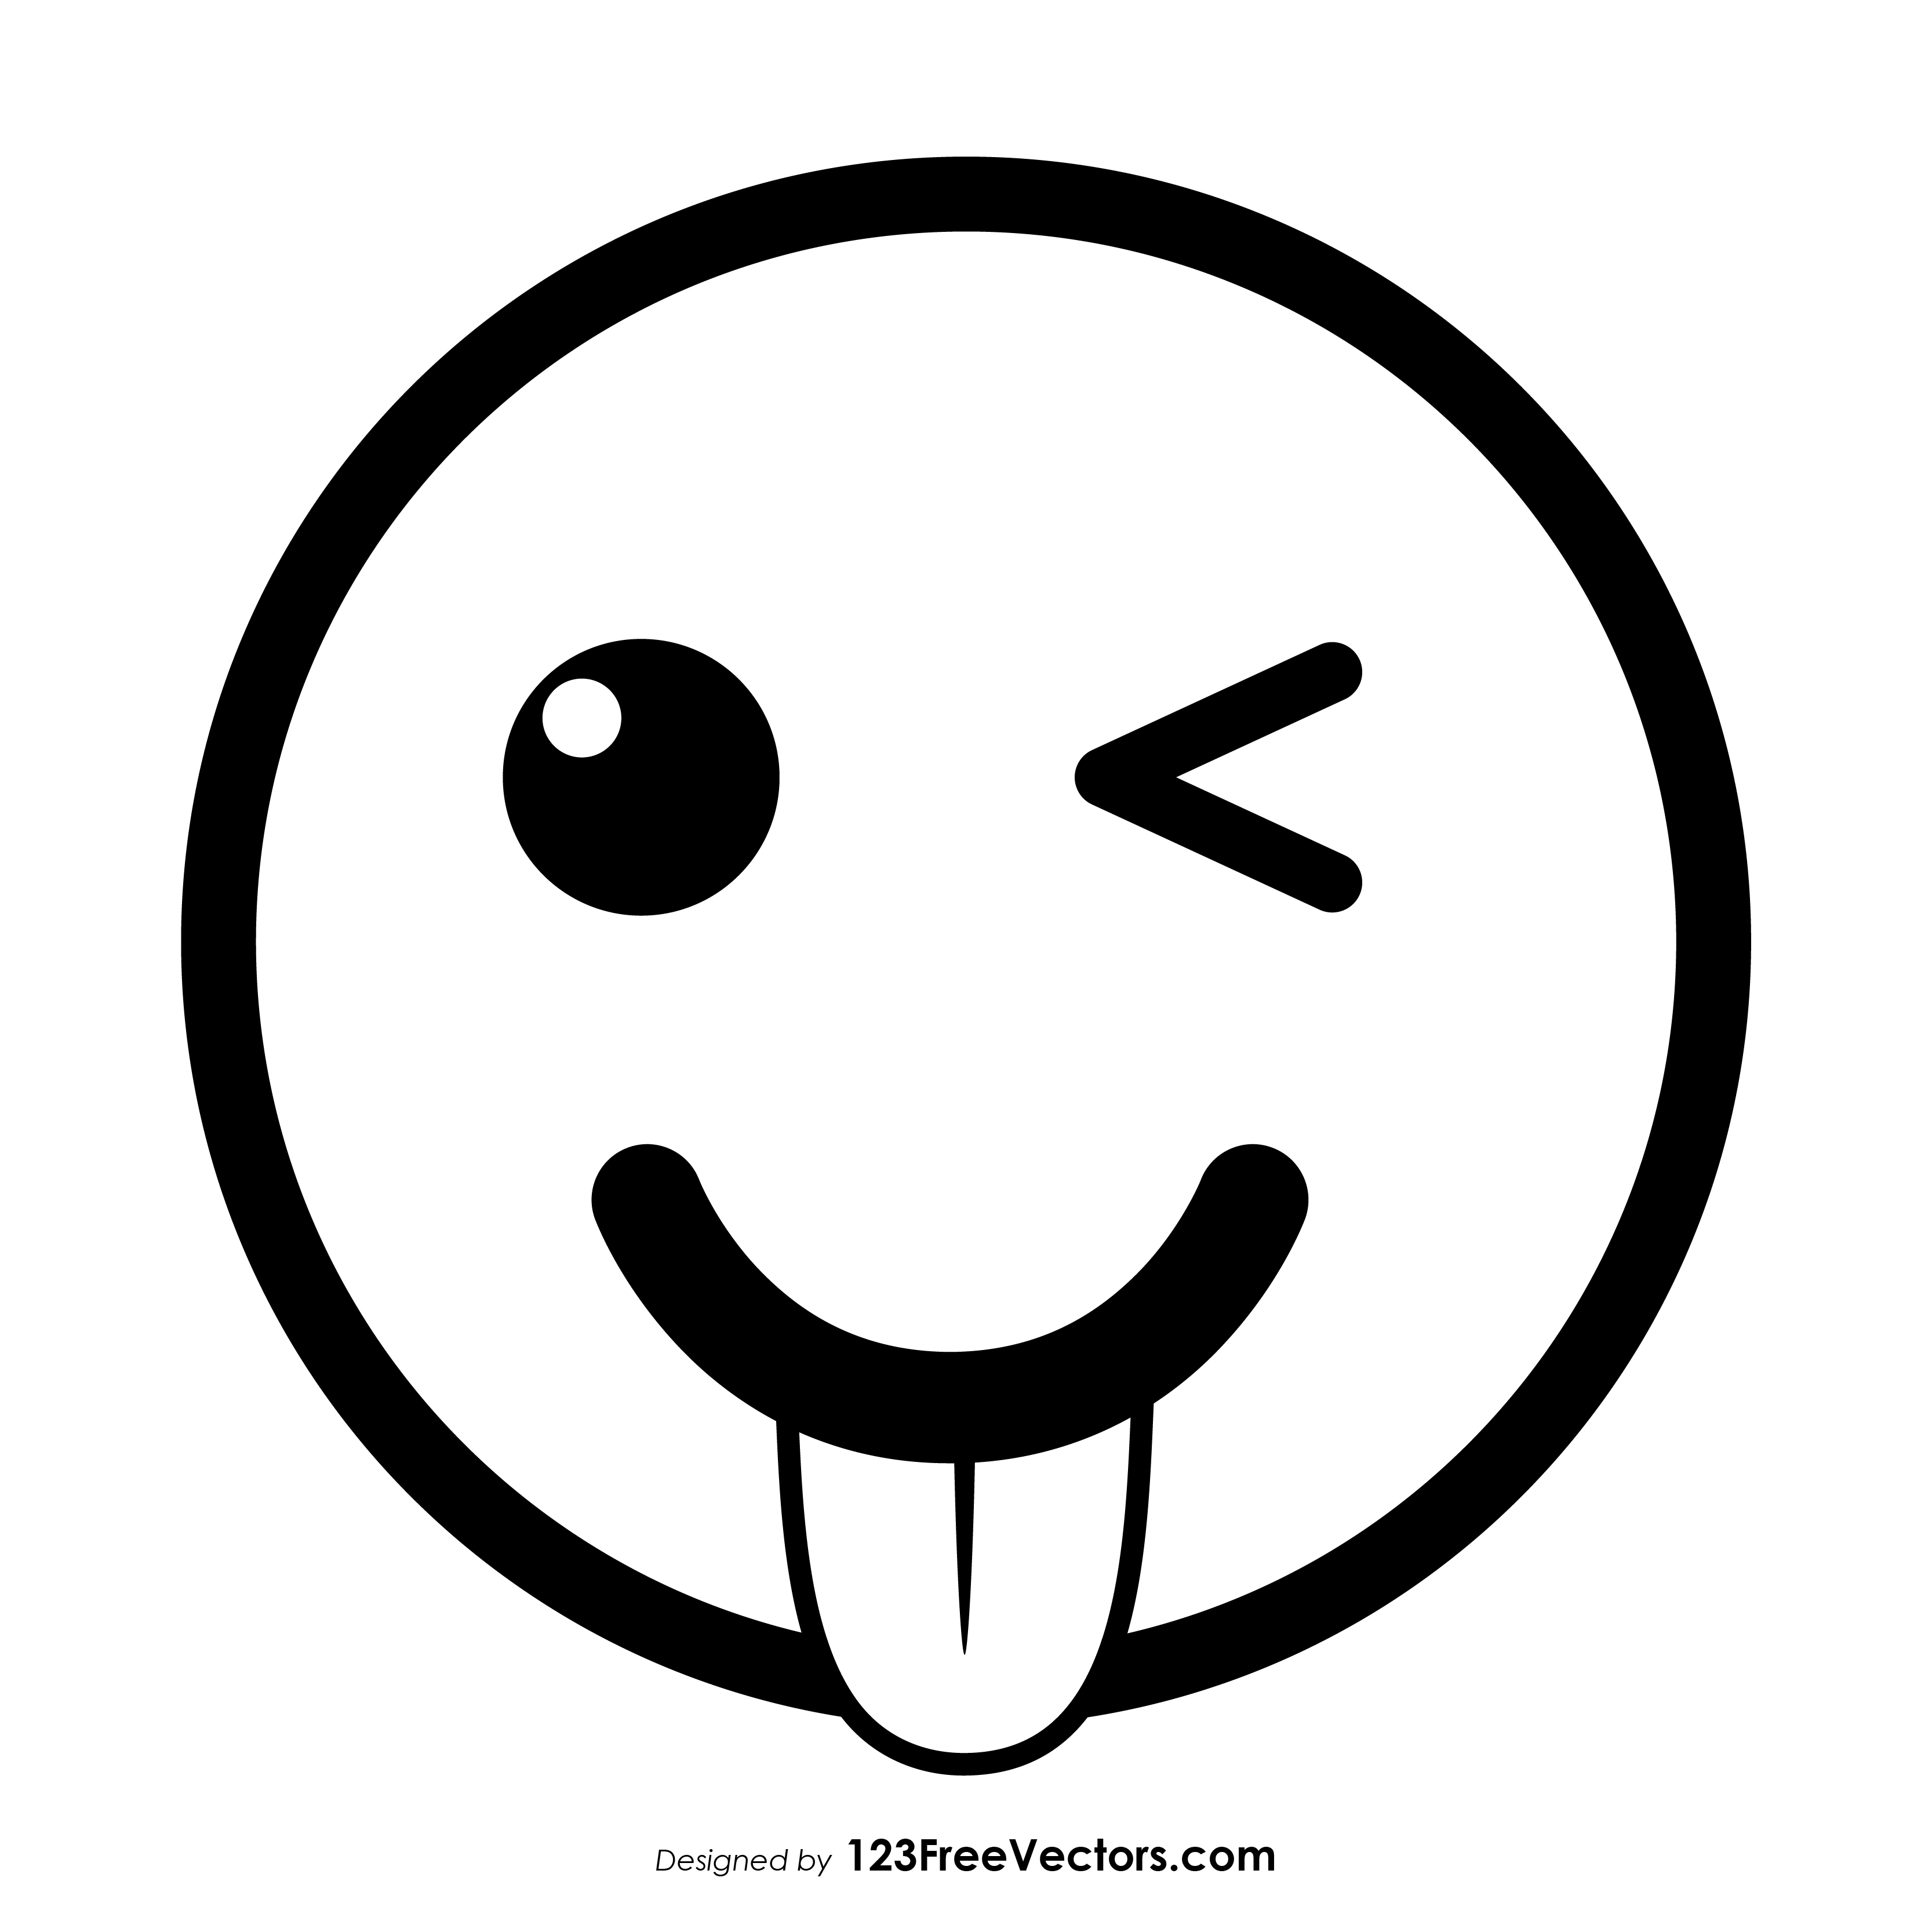 Tongue smile face clipart black and white clip art transparent download Winking Face with Tongue Emoji Outline Clipart clip art transparent download